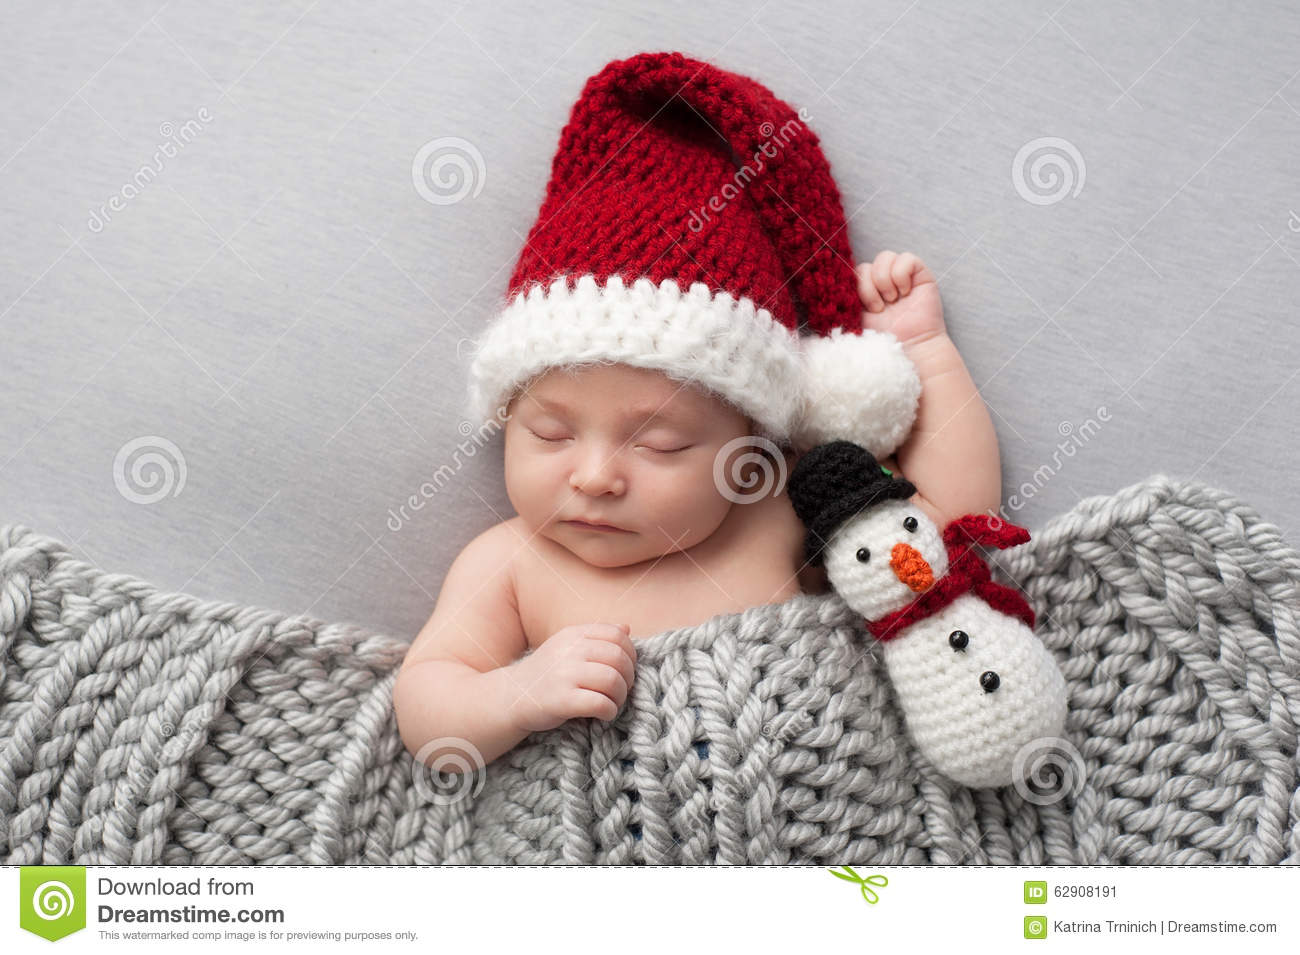 By Jacqui's Preemie Pride, Inc. % cotton unisex baby Santa hat. with a white pom-pom on the end of the hat. and a cute red heart applique on the brim. Perfect for Baby's First Christmas! A red fold.